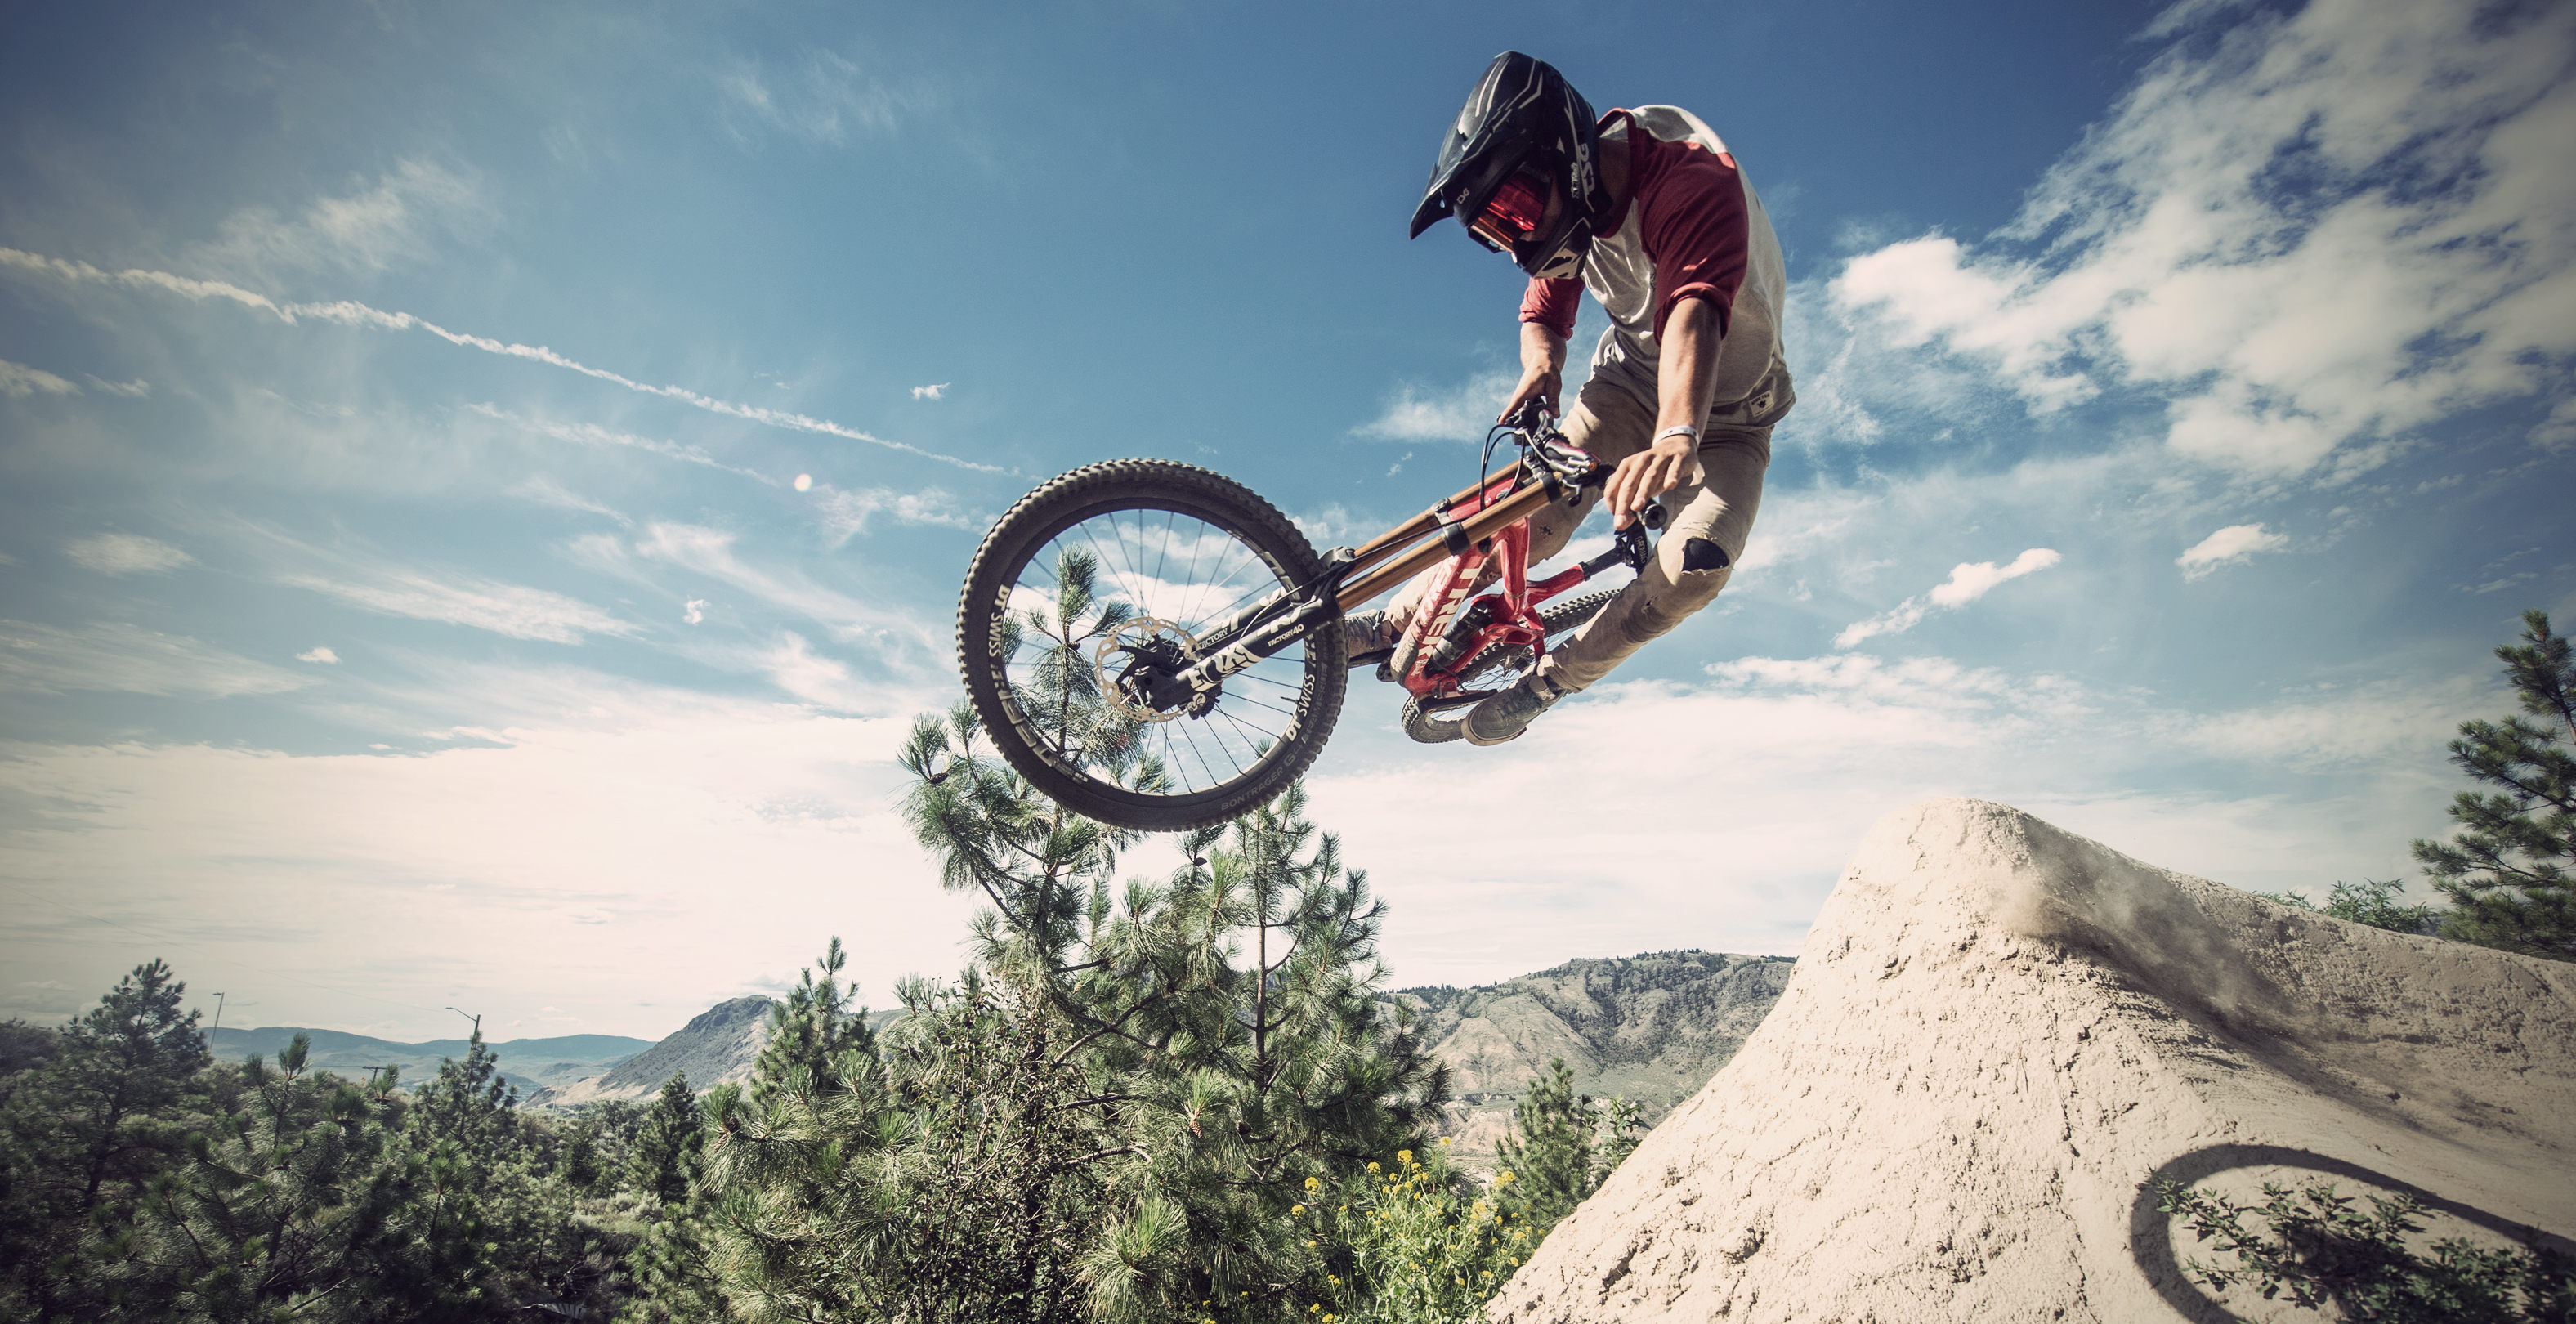 Lucas Huppert mountain bike TSG team rider